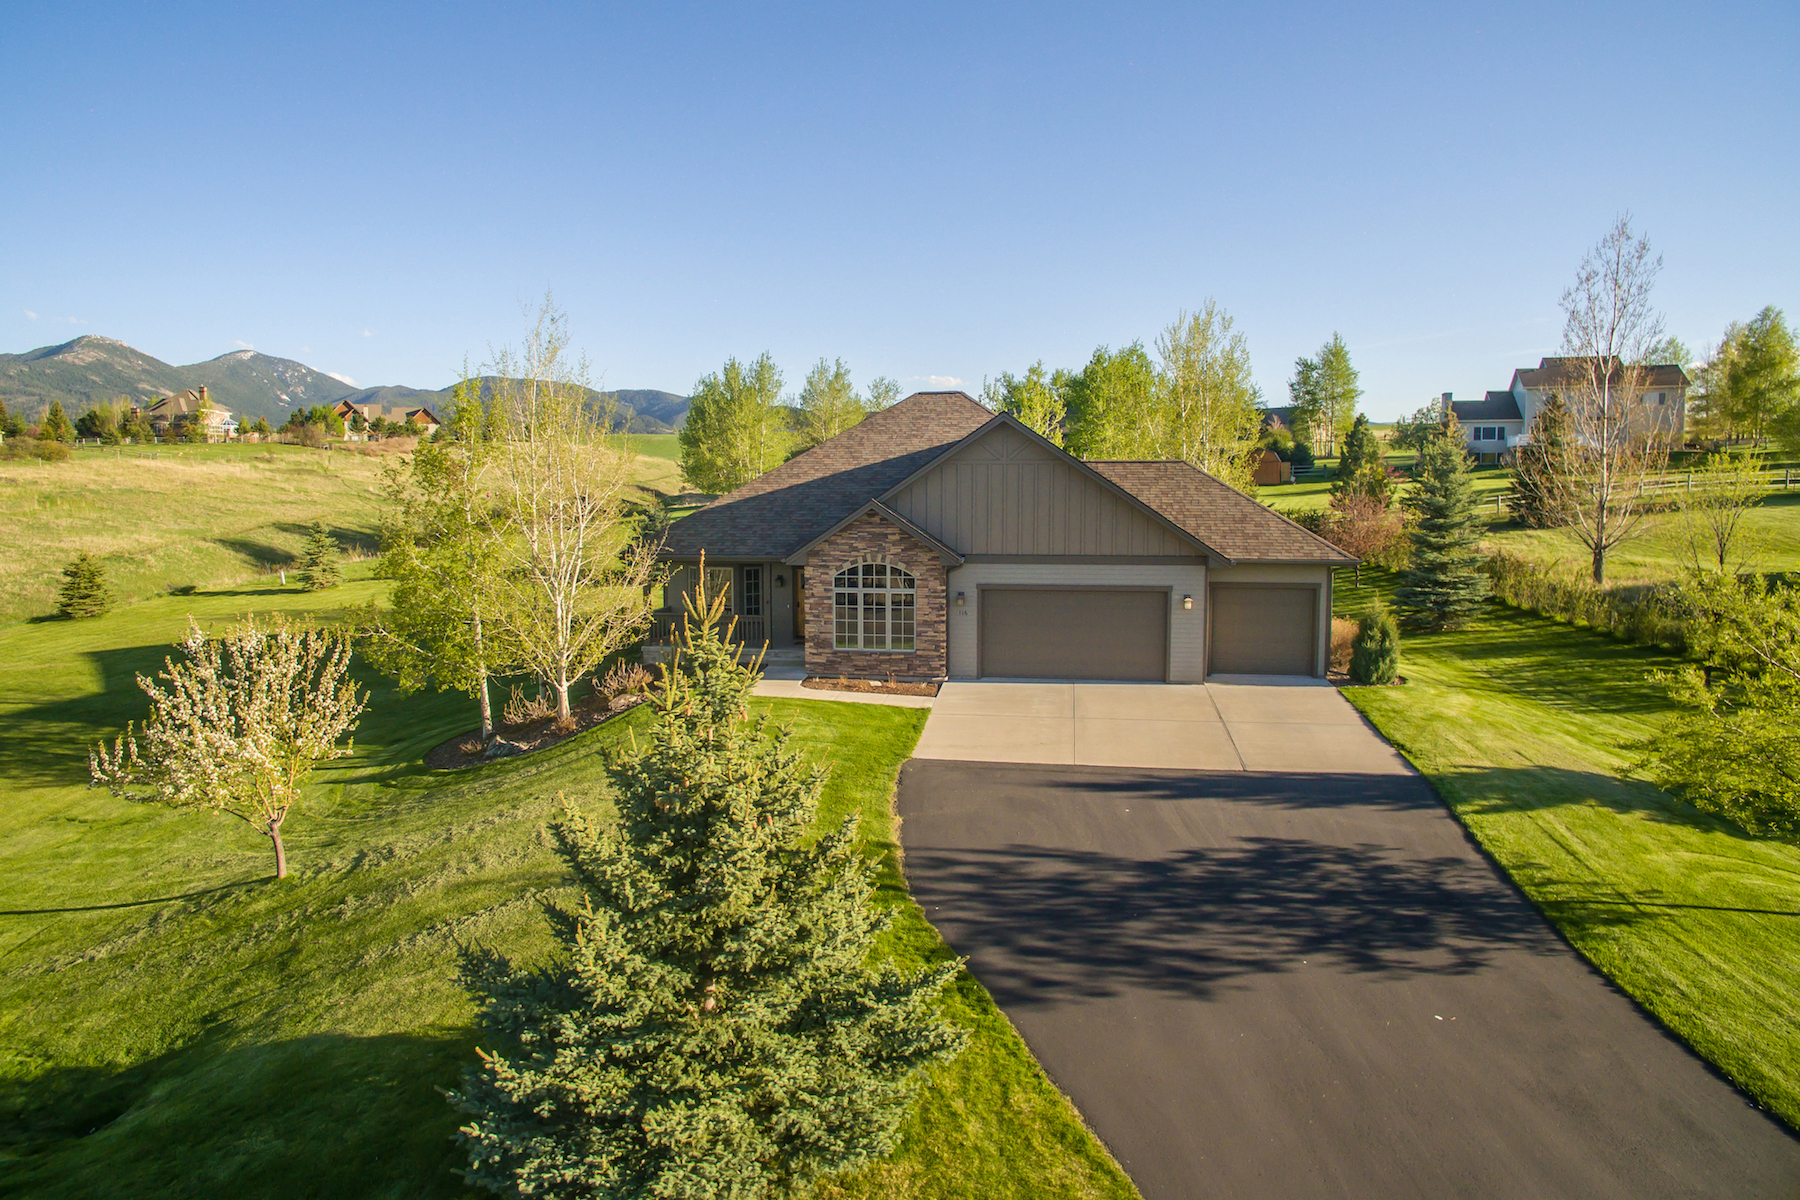 Single Family Home for Sale at 116 Cobalt Court, Bozeman, MT Bozeman, Montana, 59715 United States